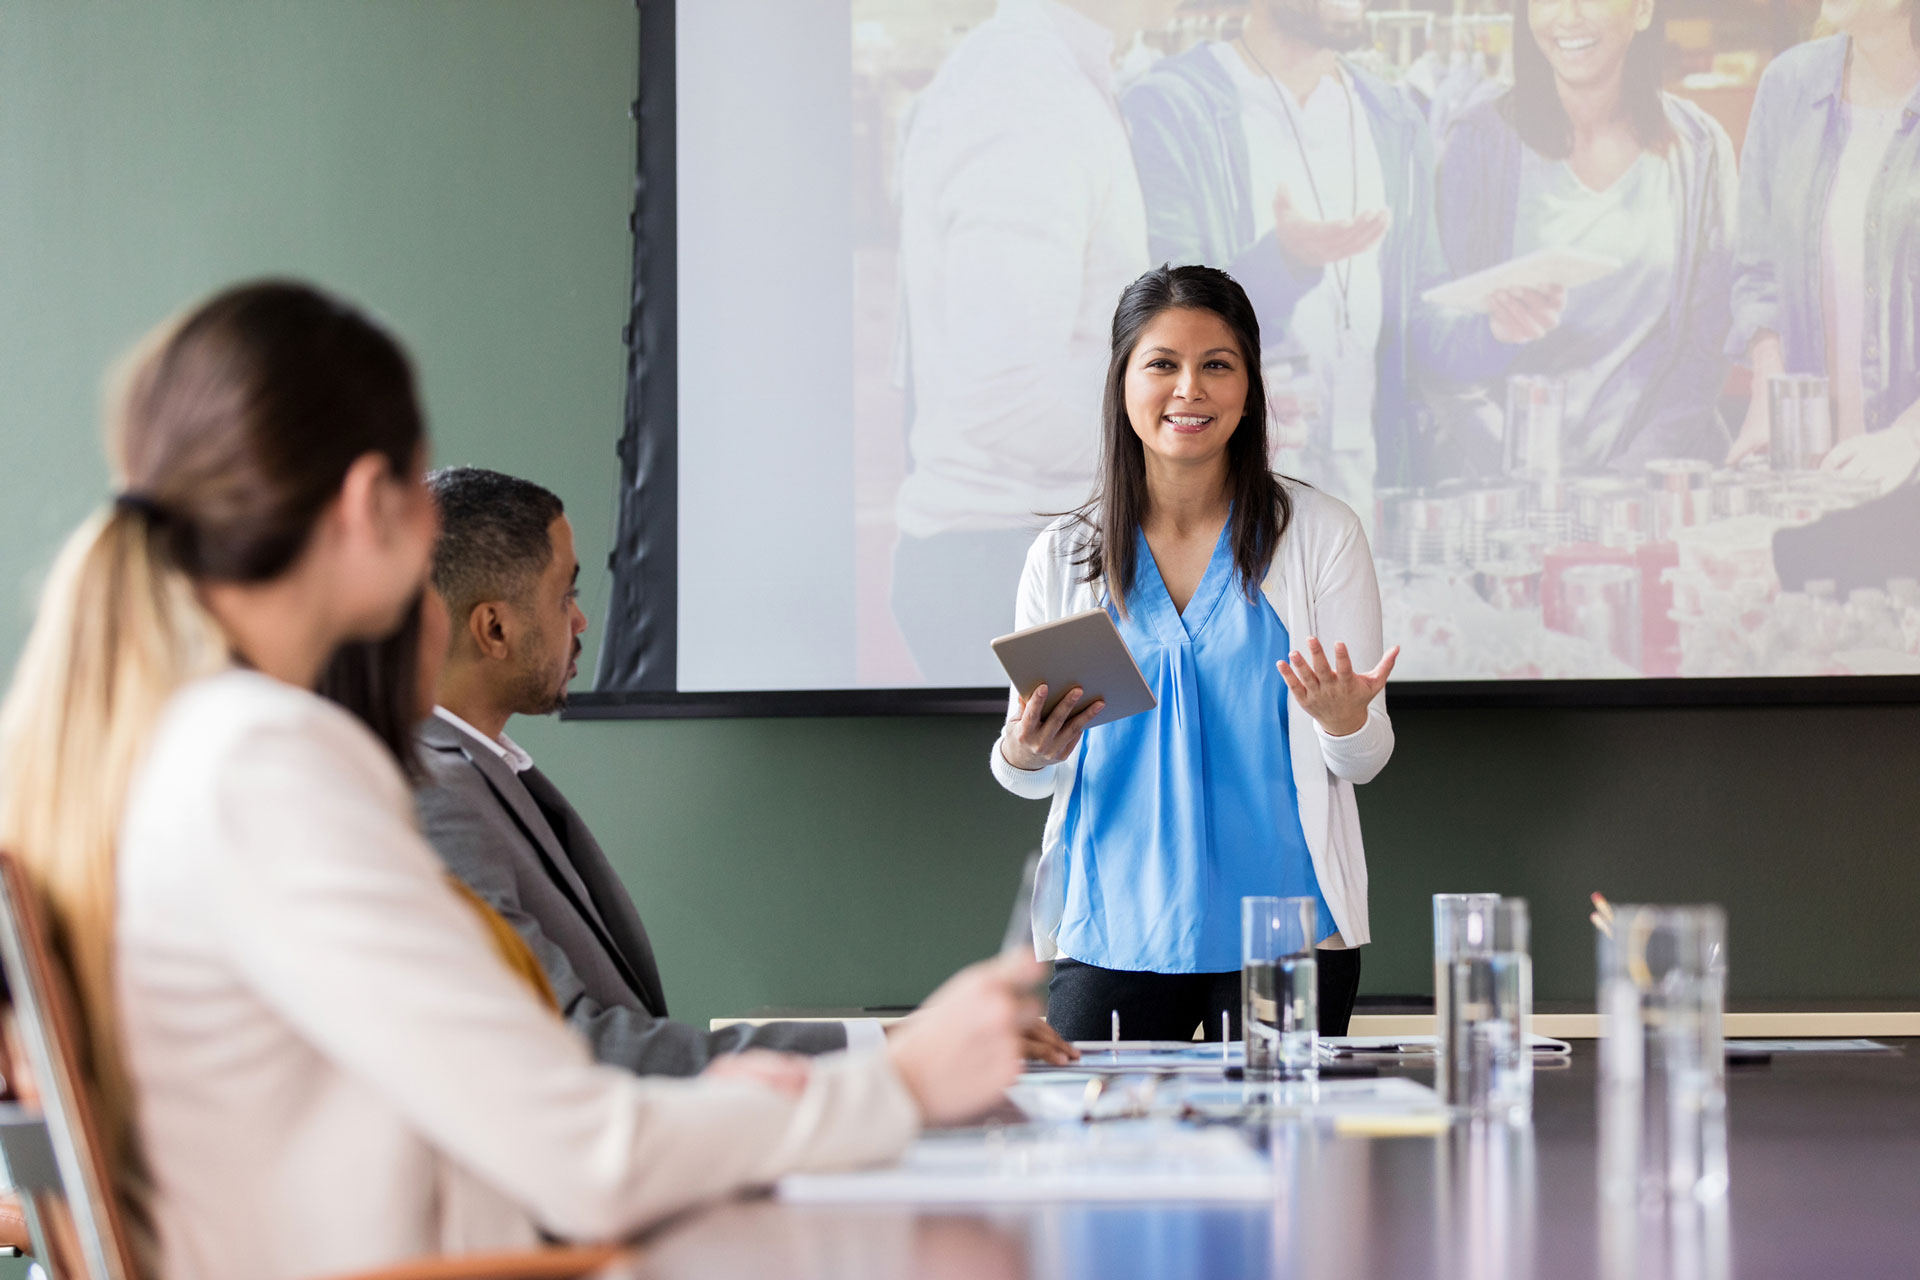 4 Ways Public Speaking Skills Help You in Business